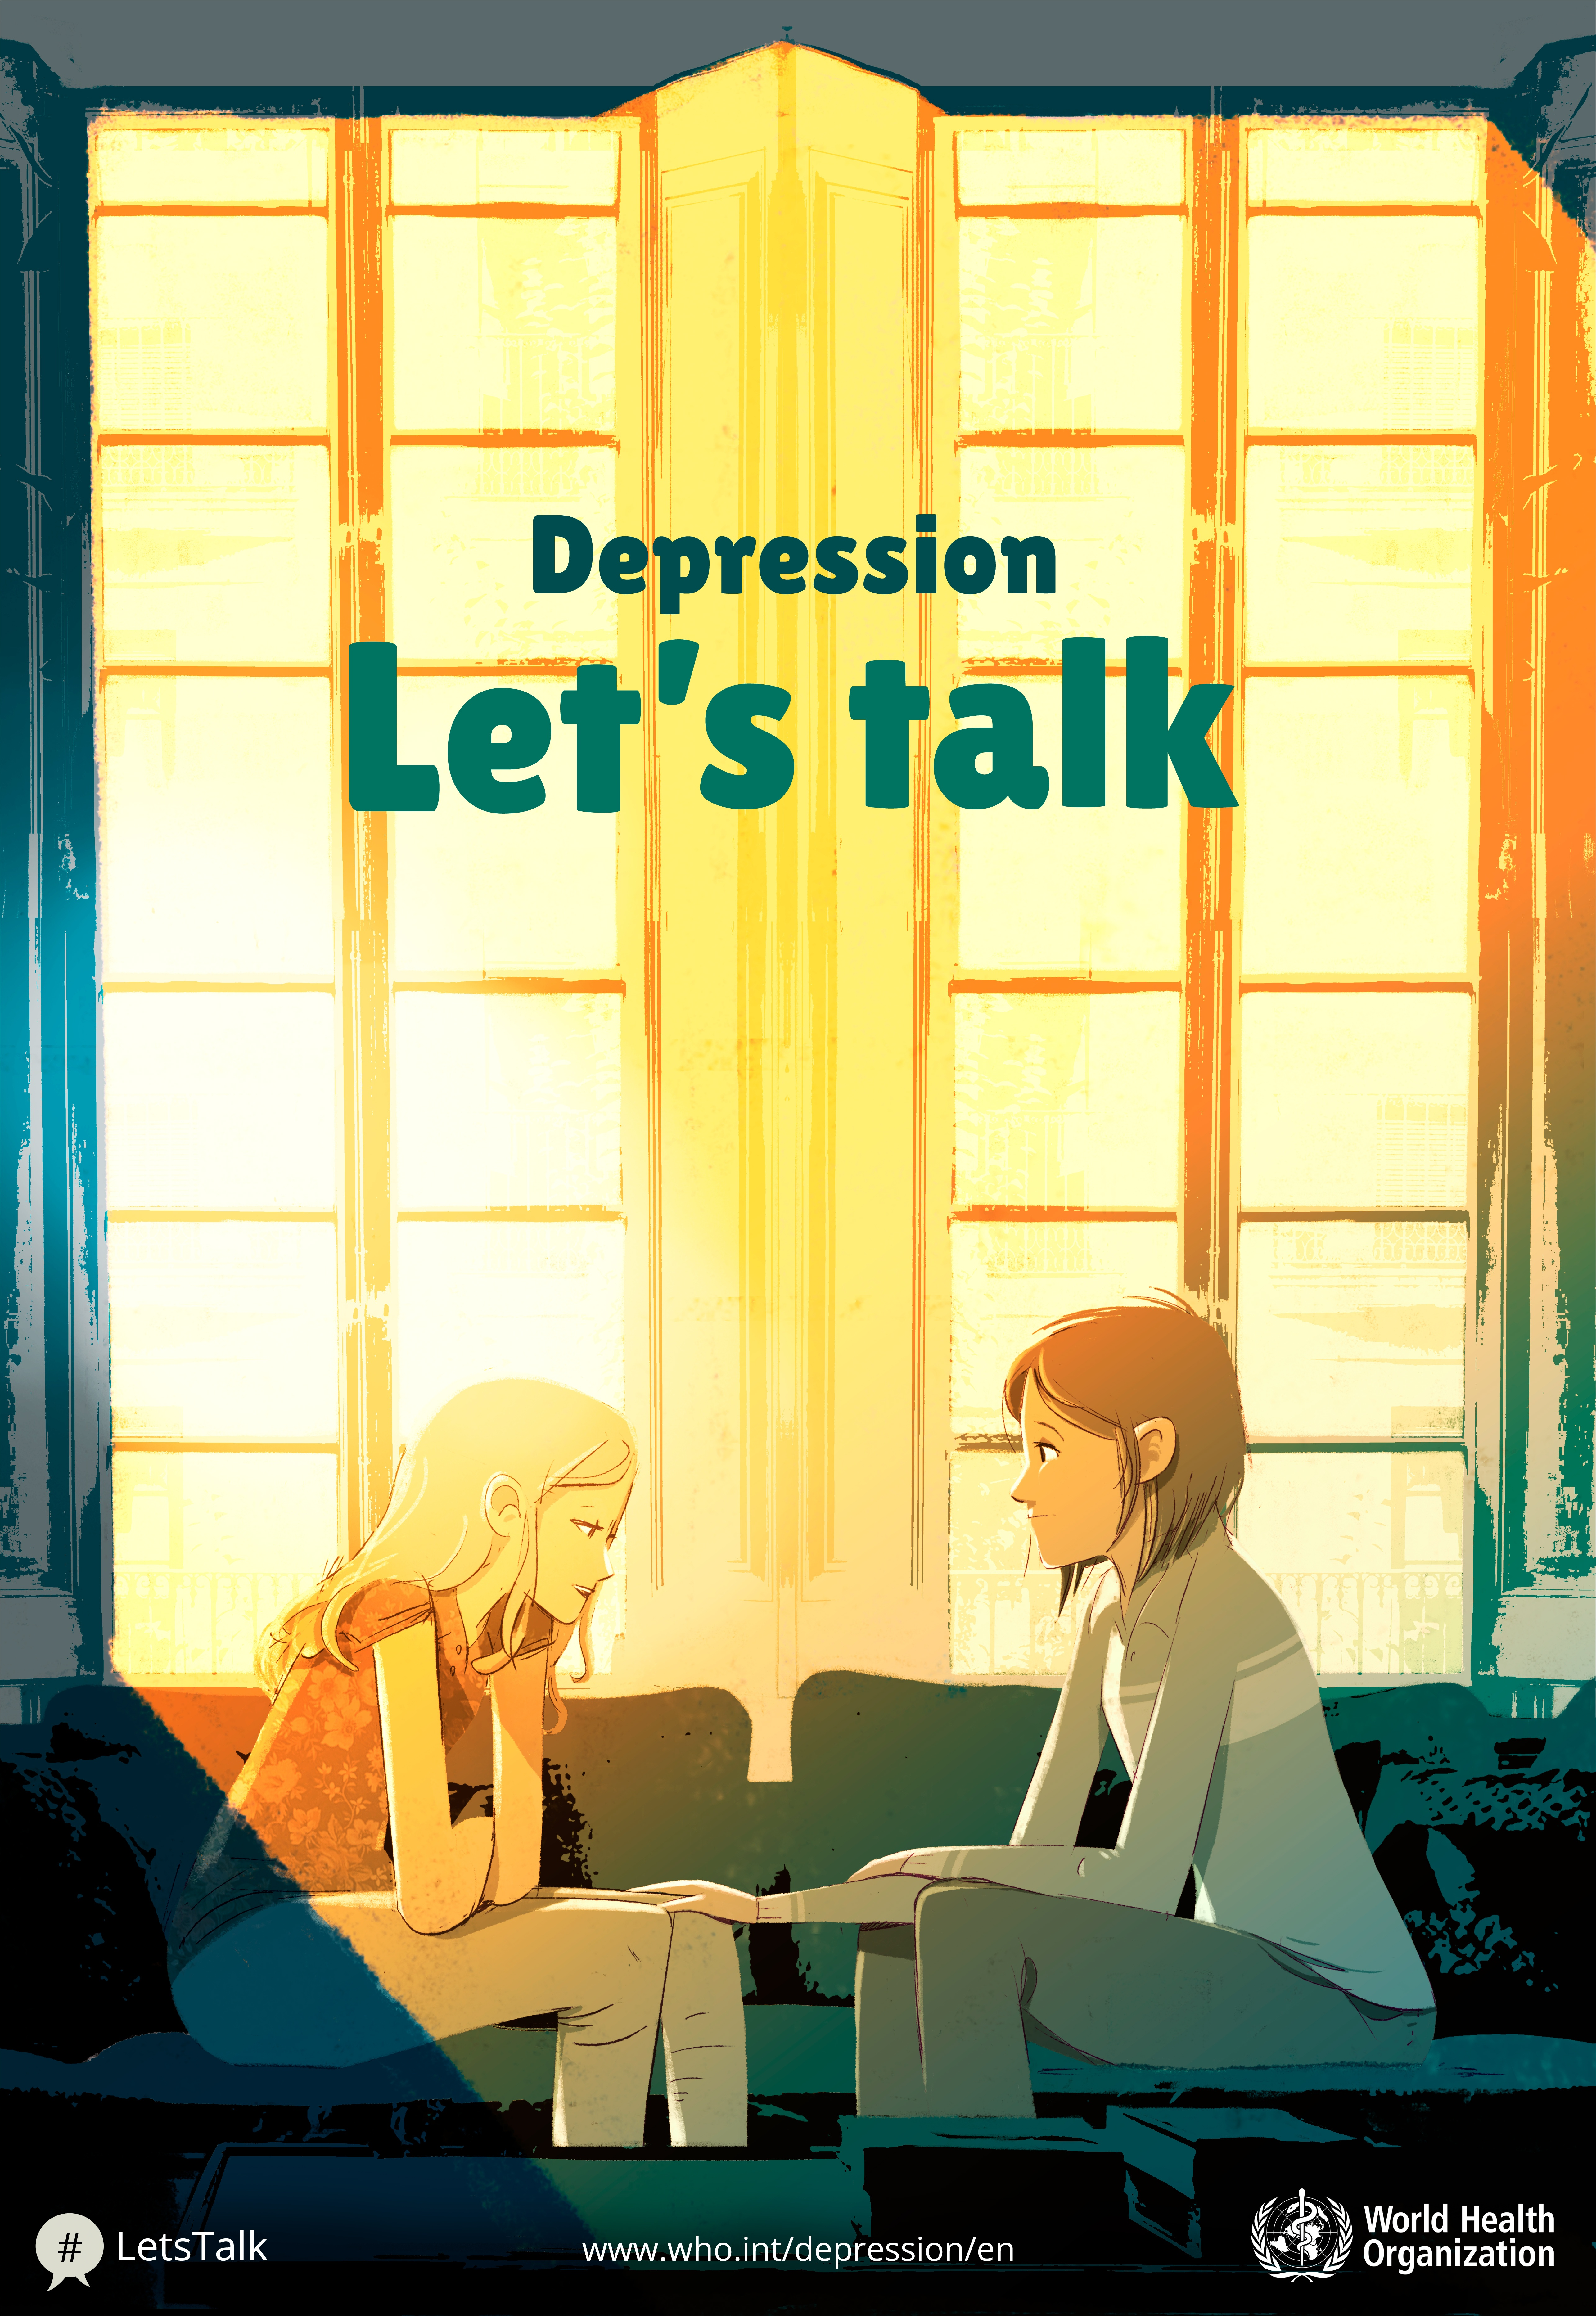 April 7th is World Health Day, and the 2017 theme is Depression: Let's Talk.